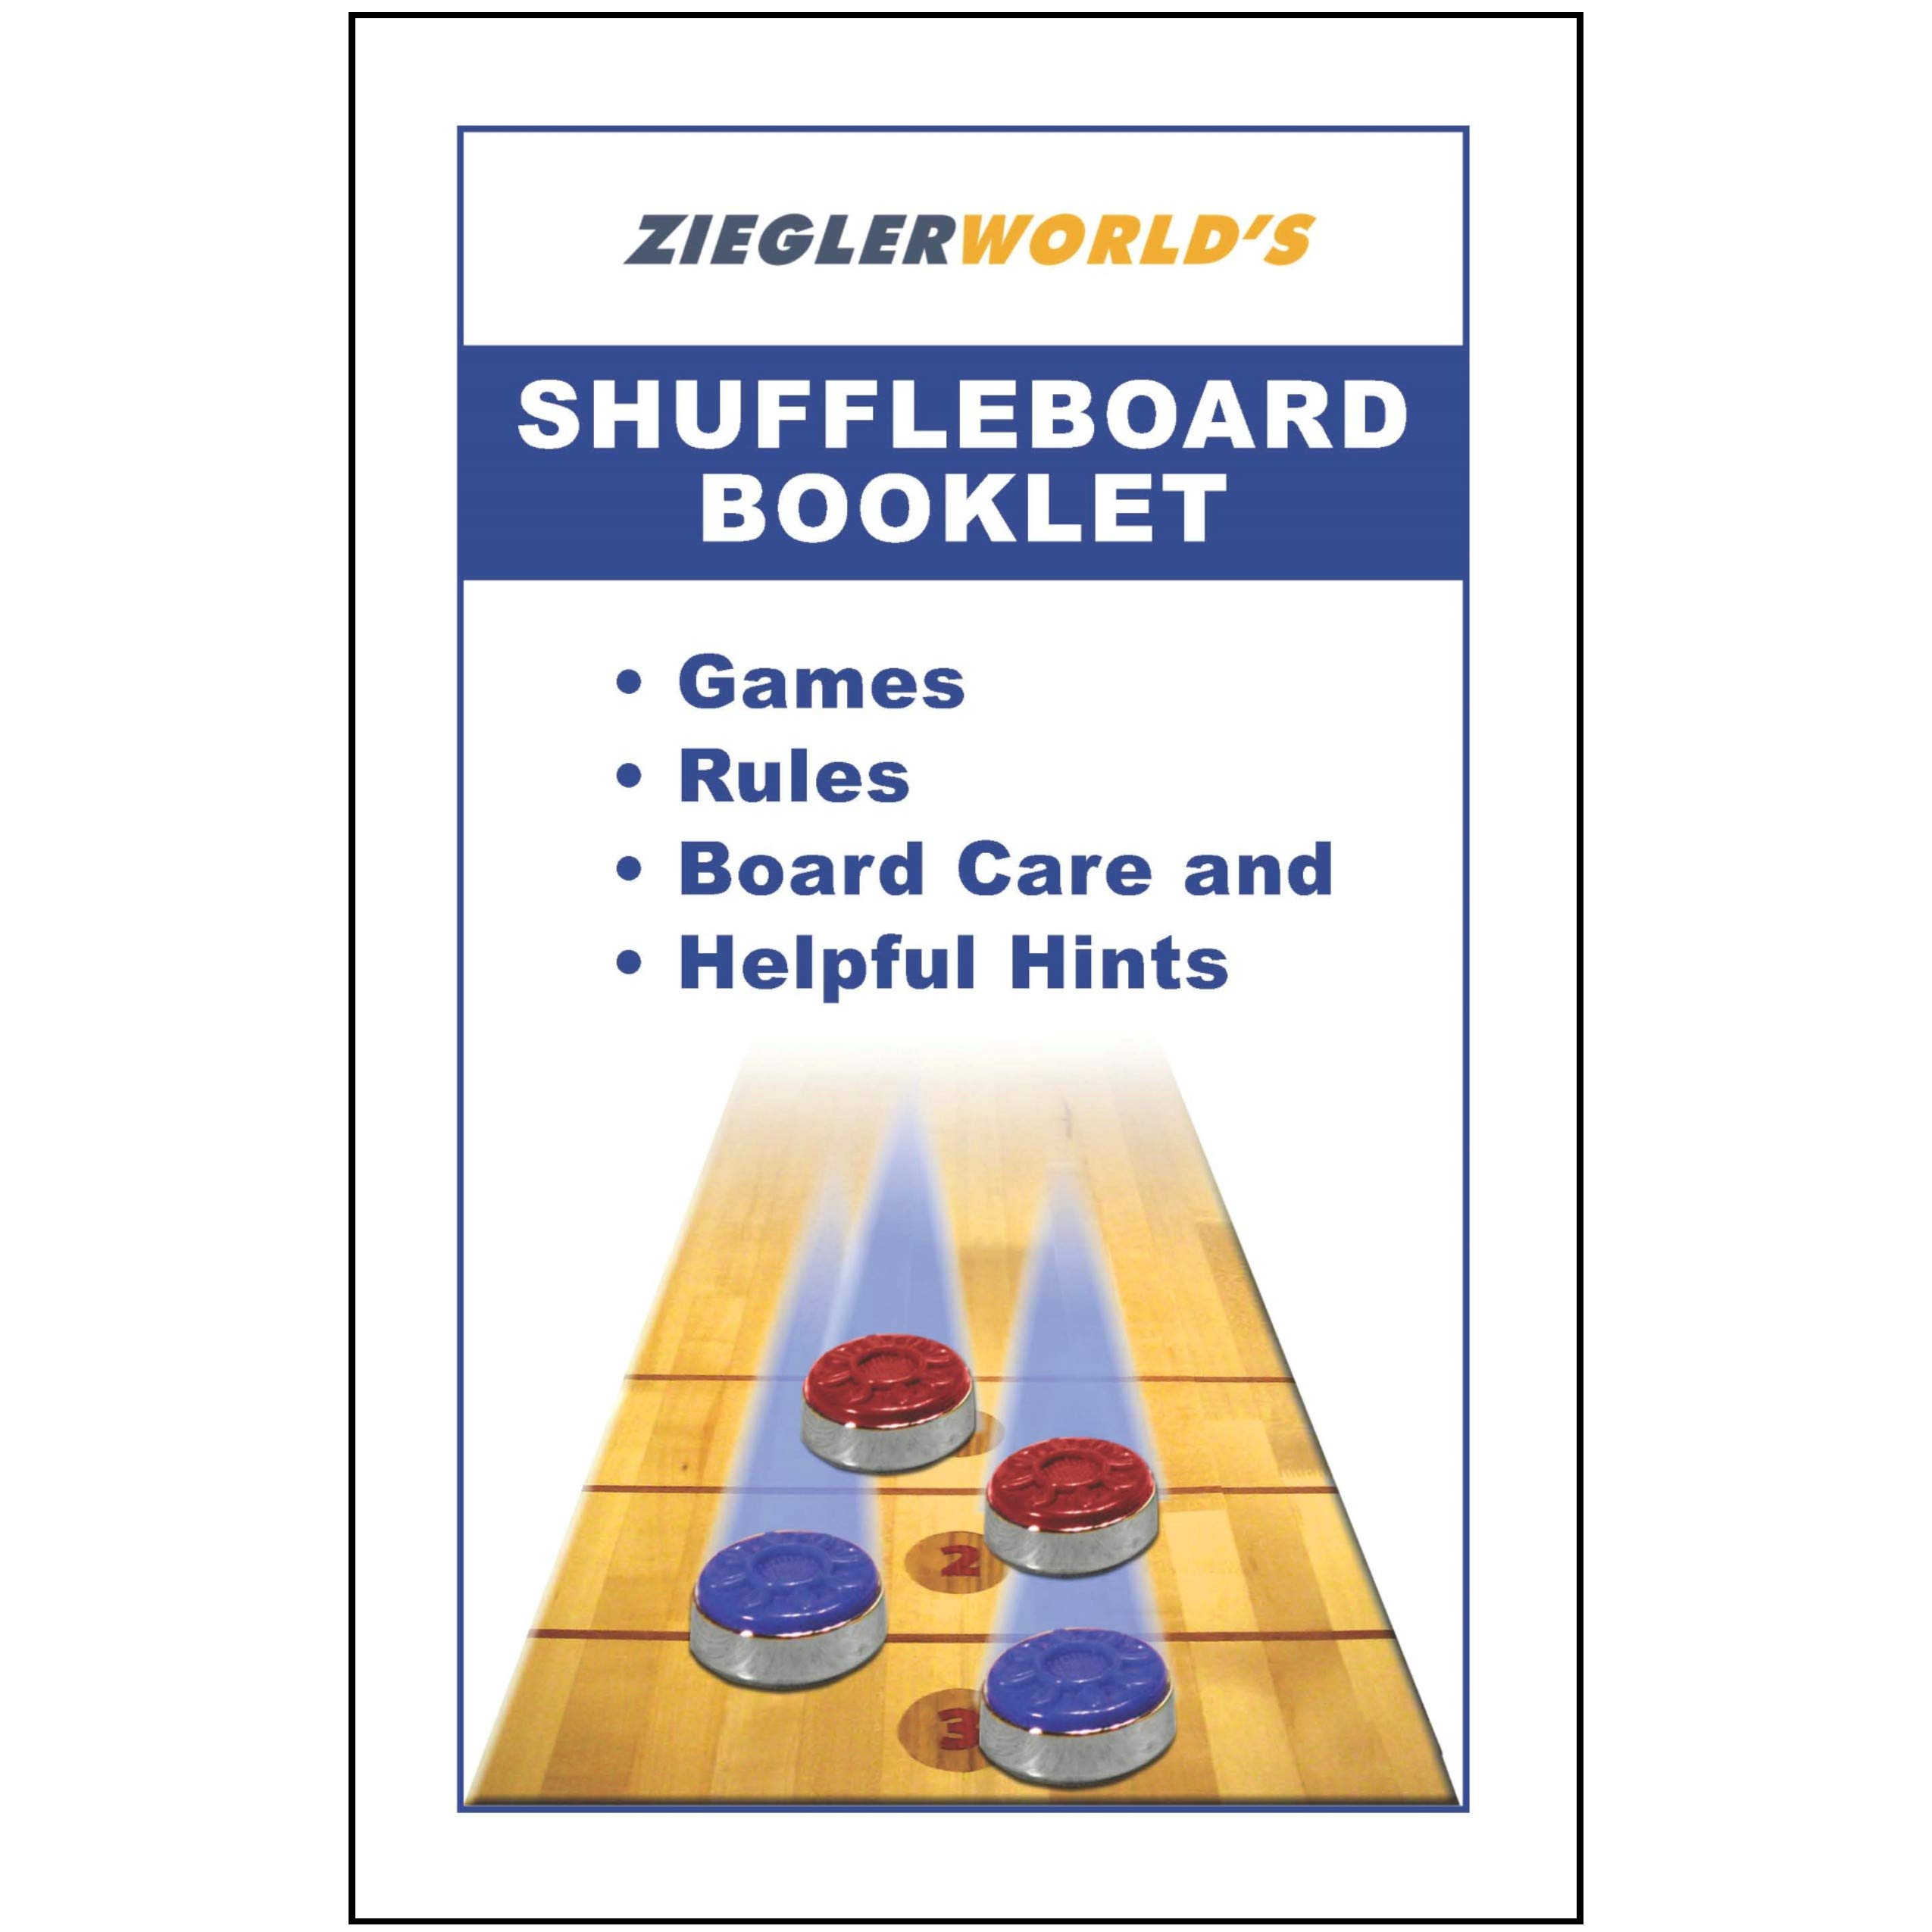 ZieglerWorld Table Large Shuffleboard Puck Weights - 4 Pucks - Black Colors + Booklet by ZieglerWorld